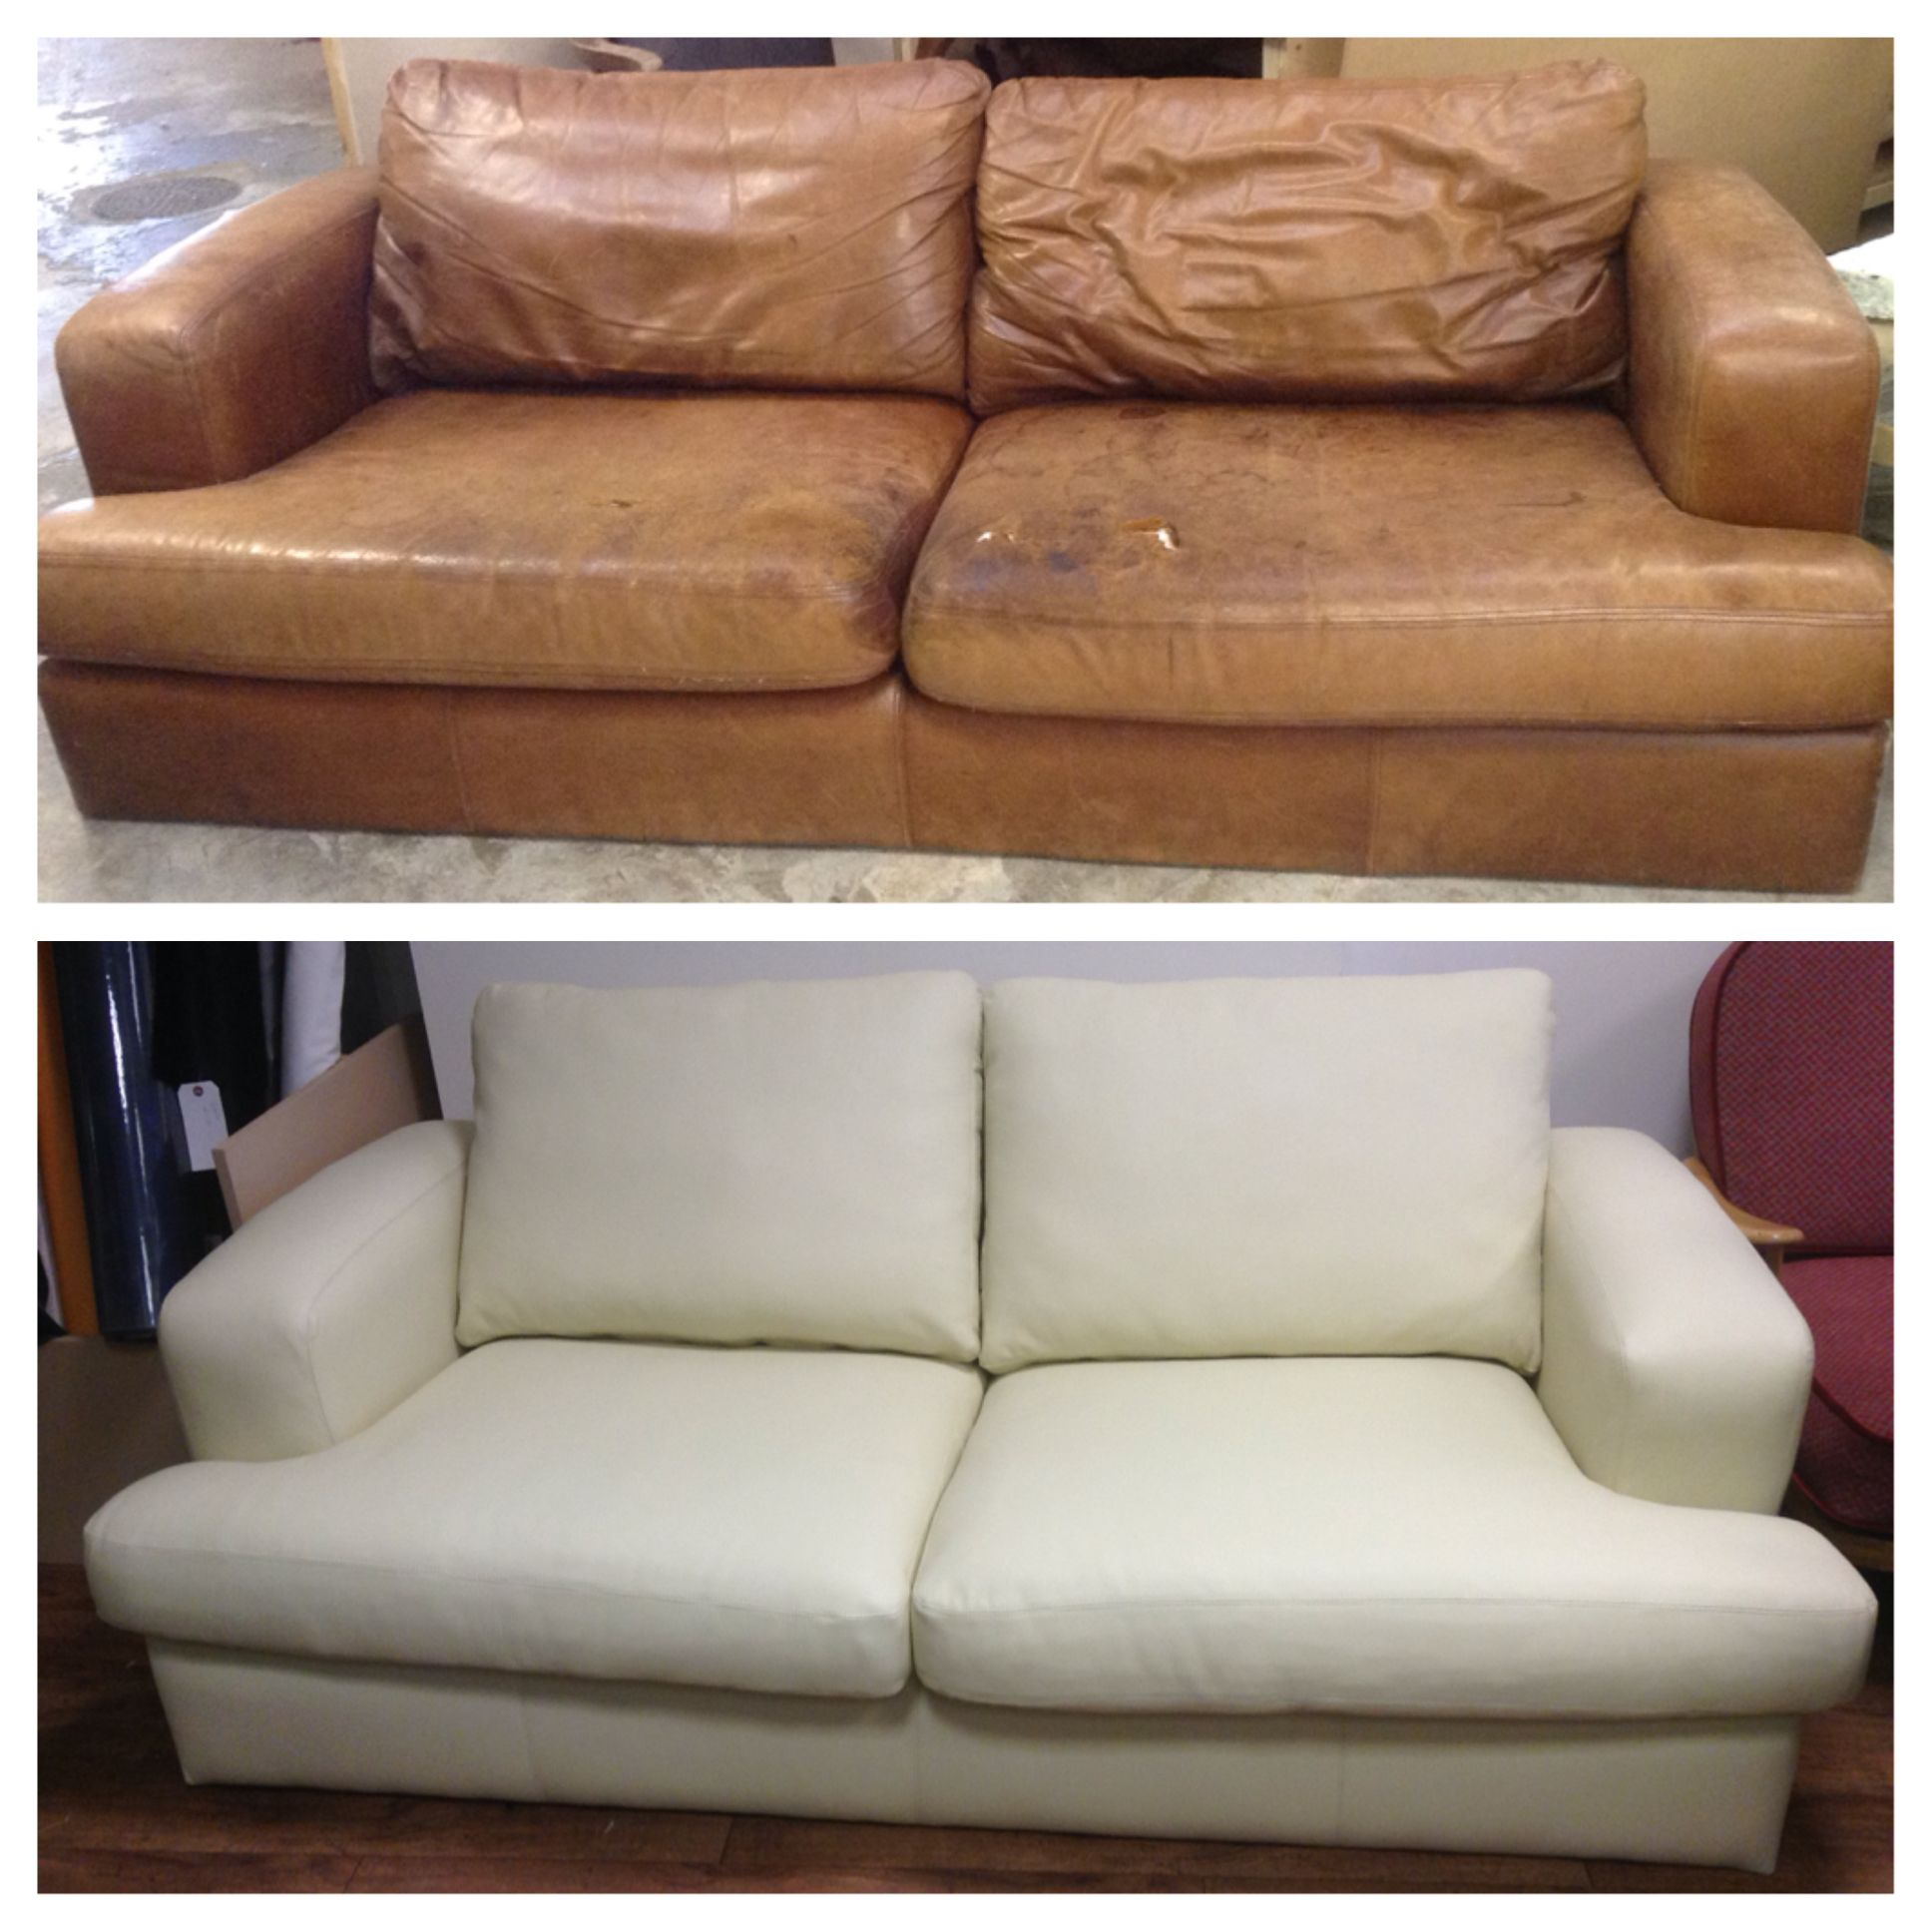 This Was A Full Recover On A Two Seater Sofa Which Was